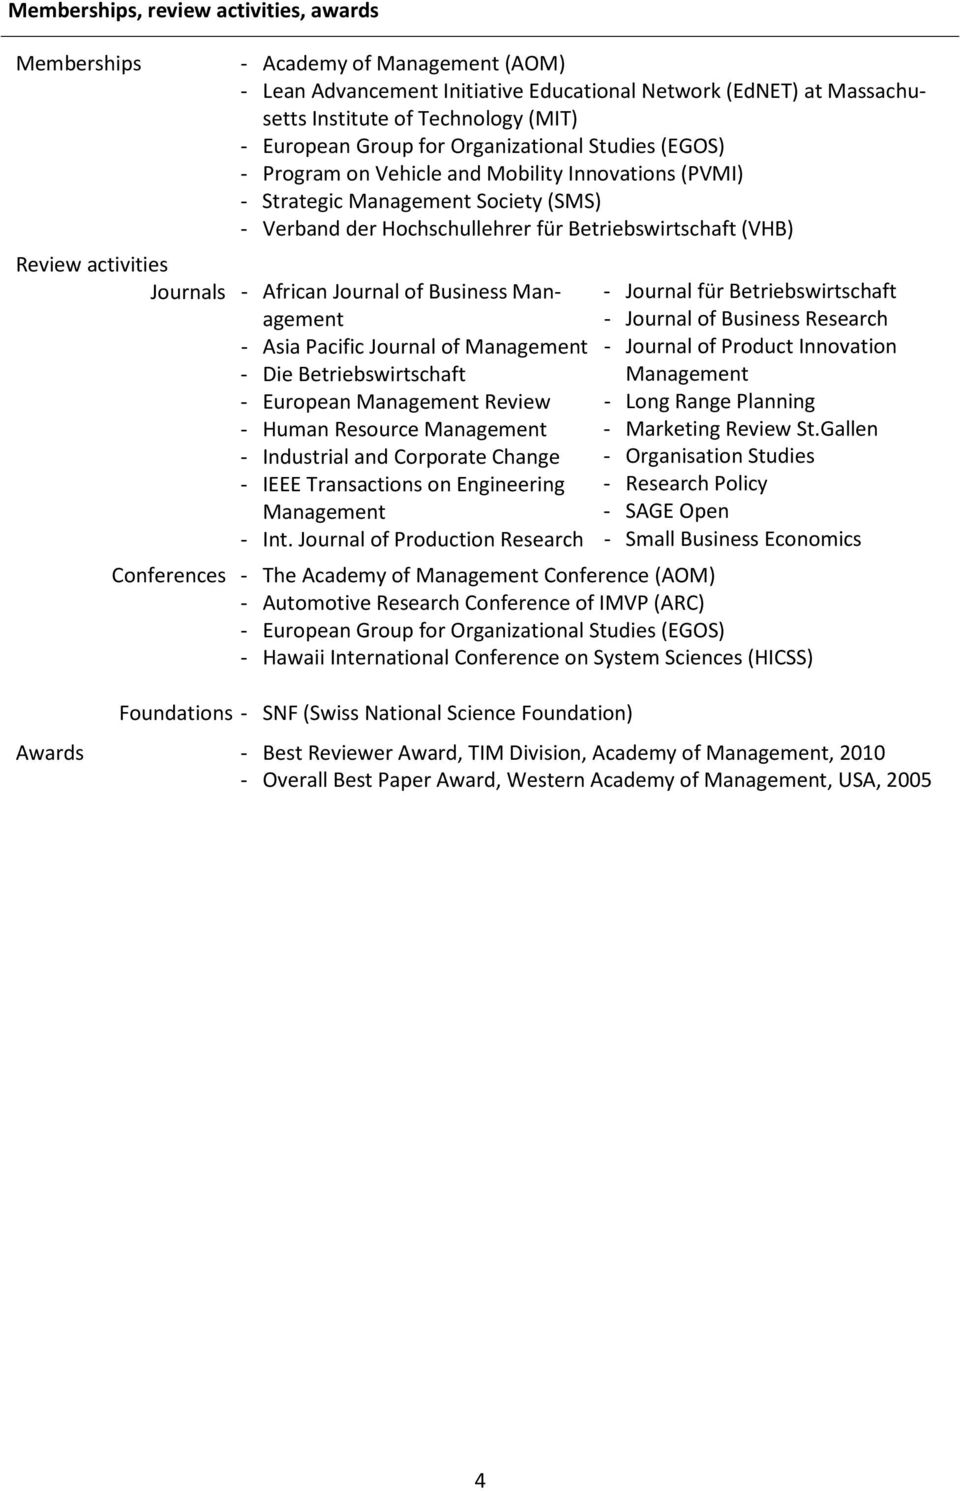 activities Journals - African Journal of Business Management - Asia Pacific Journal of Management - Die Betriebswirtschaft - European Management Review - Human Resource Management - Industrial and